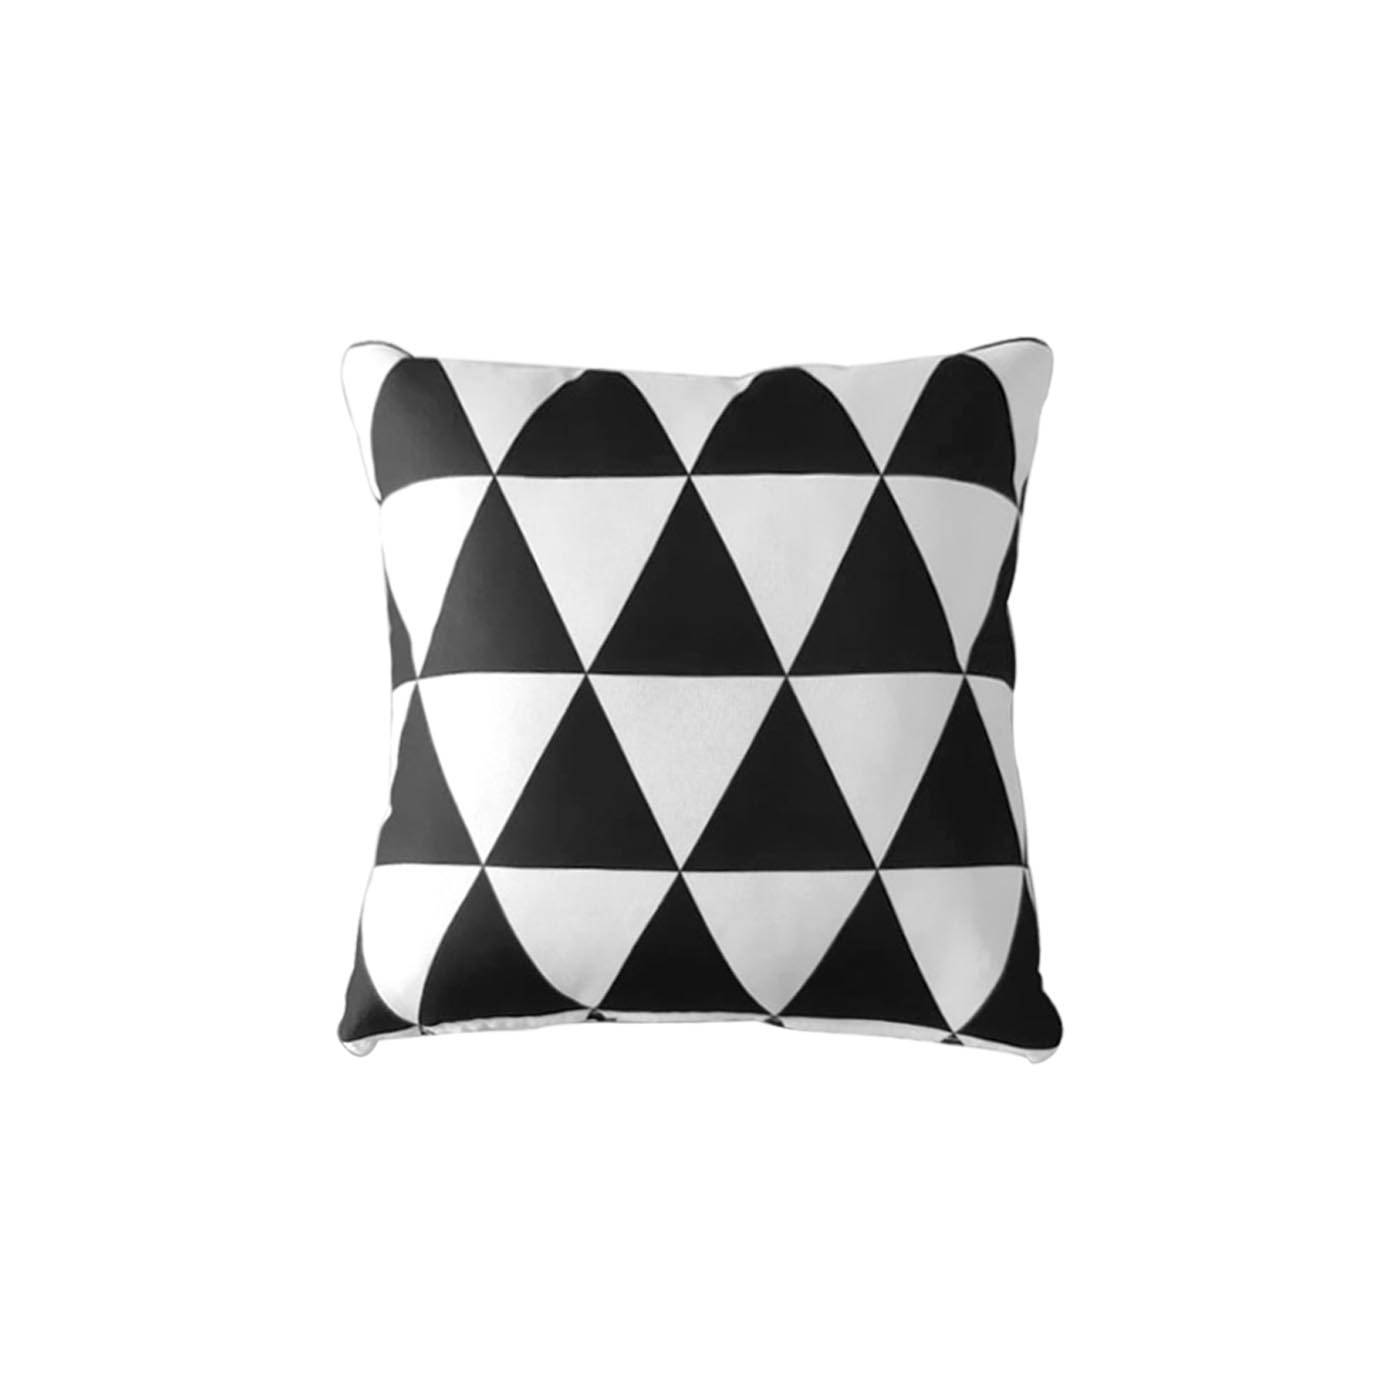 Vesterbro Triangle Texture Pillow